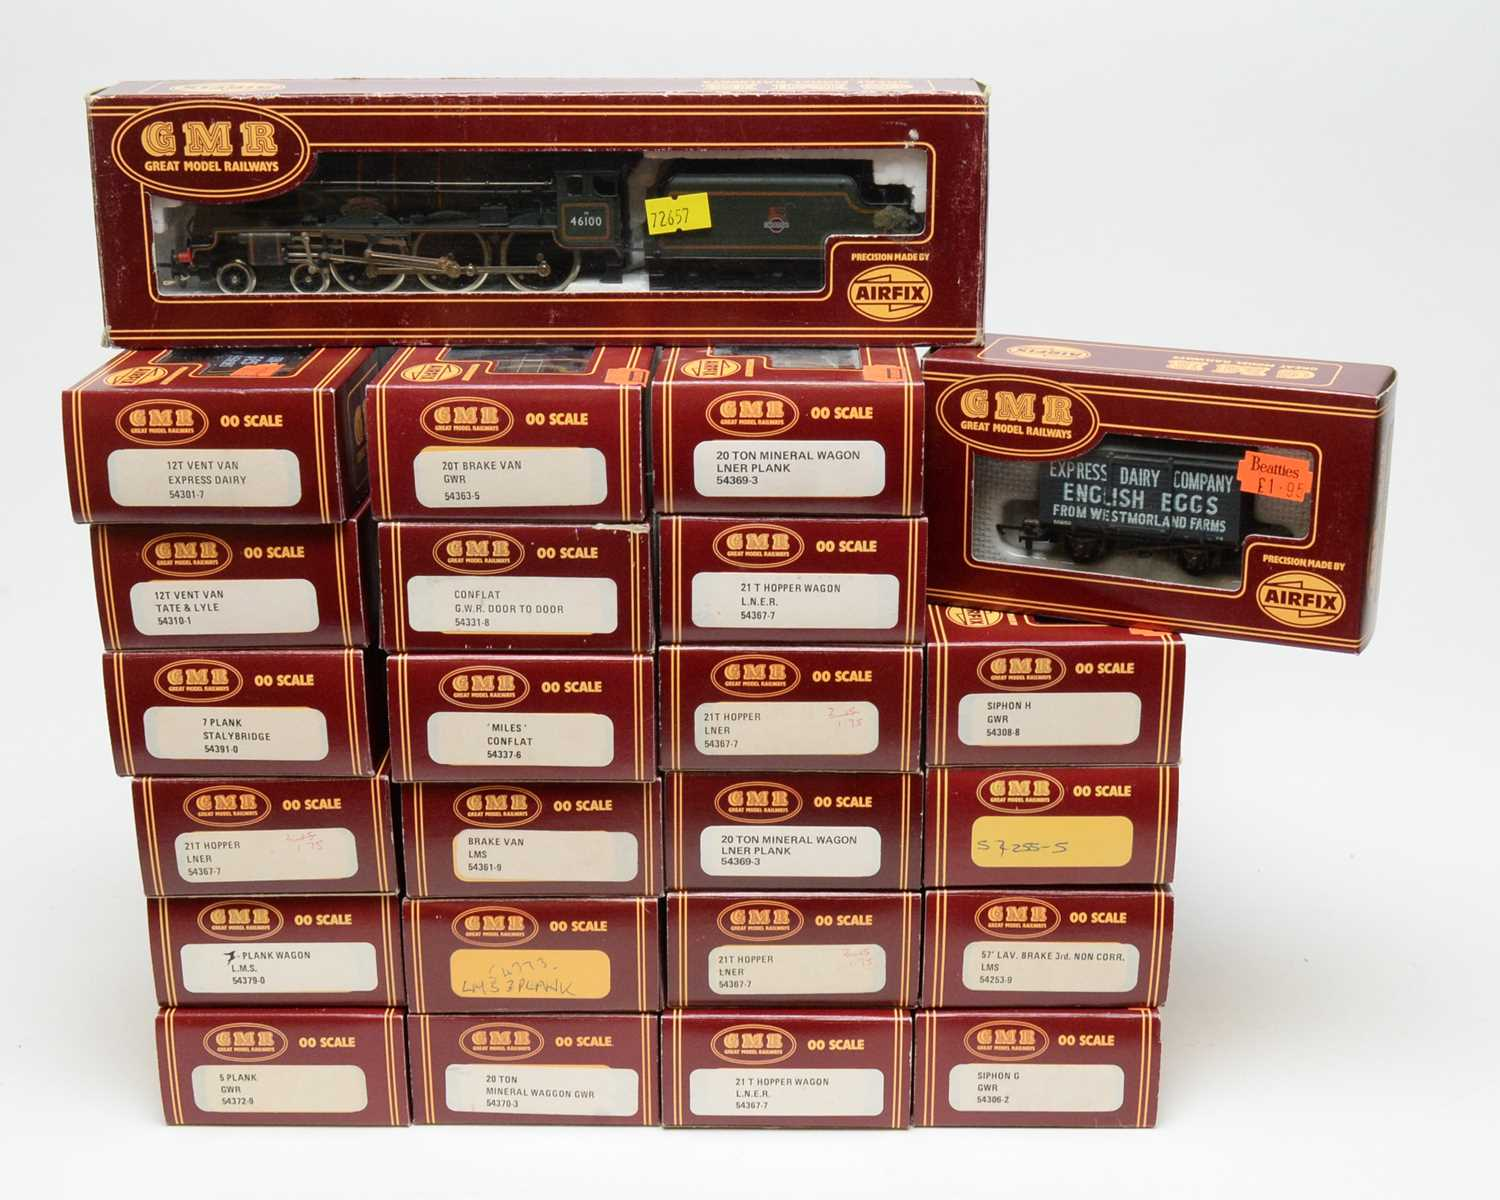 Lot 673 - Airfix GMR/Great Model Railways trains, rolling stock and carriages.